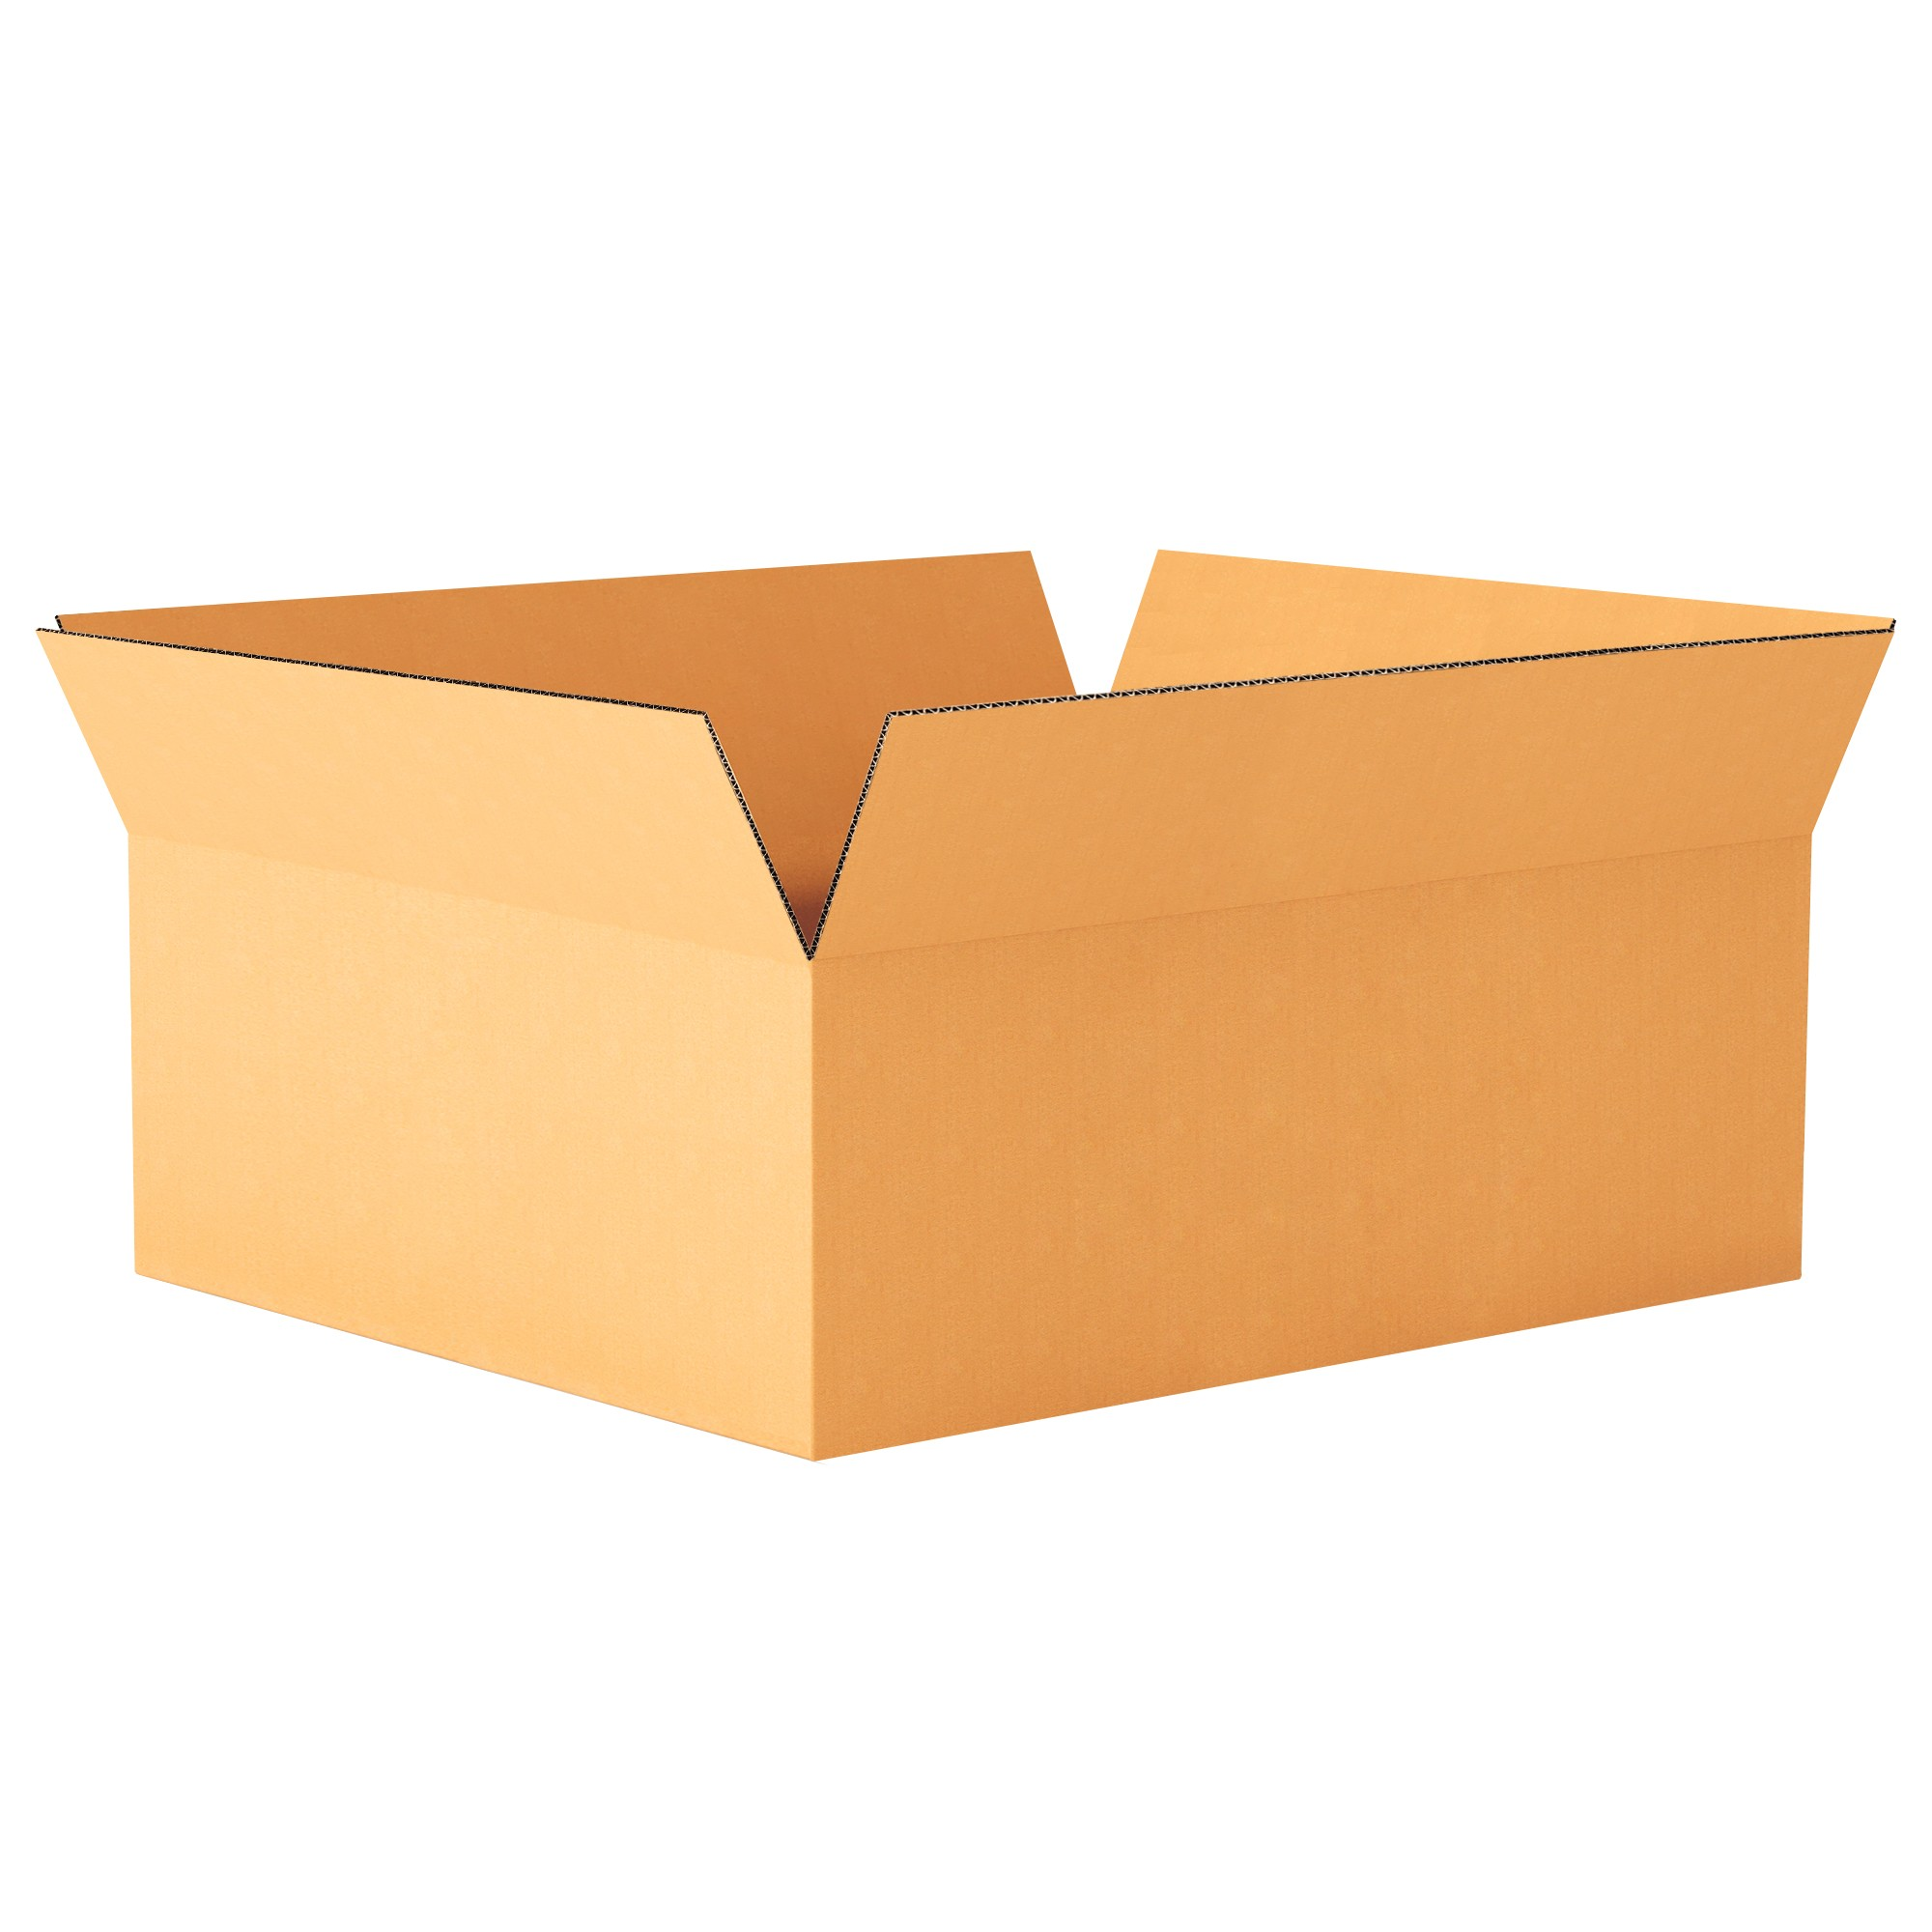 """TOTALPACK® 24 x 12 x 12"""" Single Wall Corrugated Boxes 25 Units"""